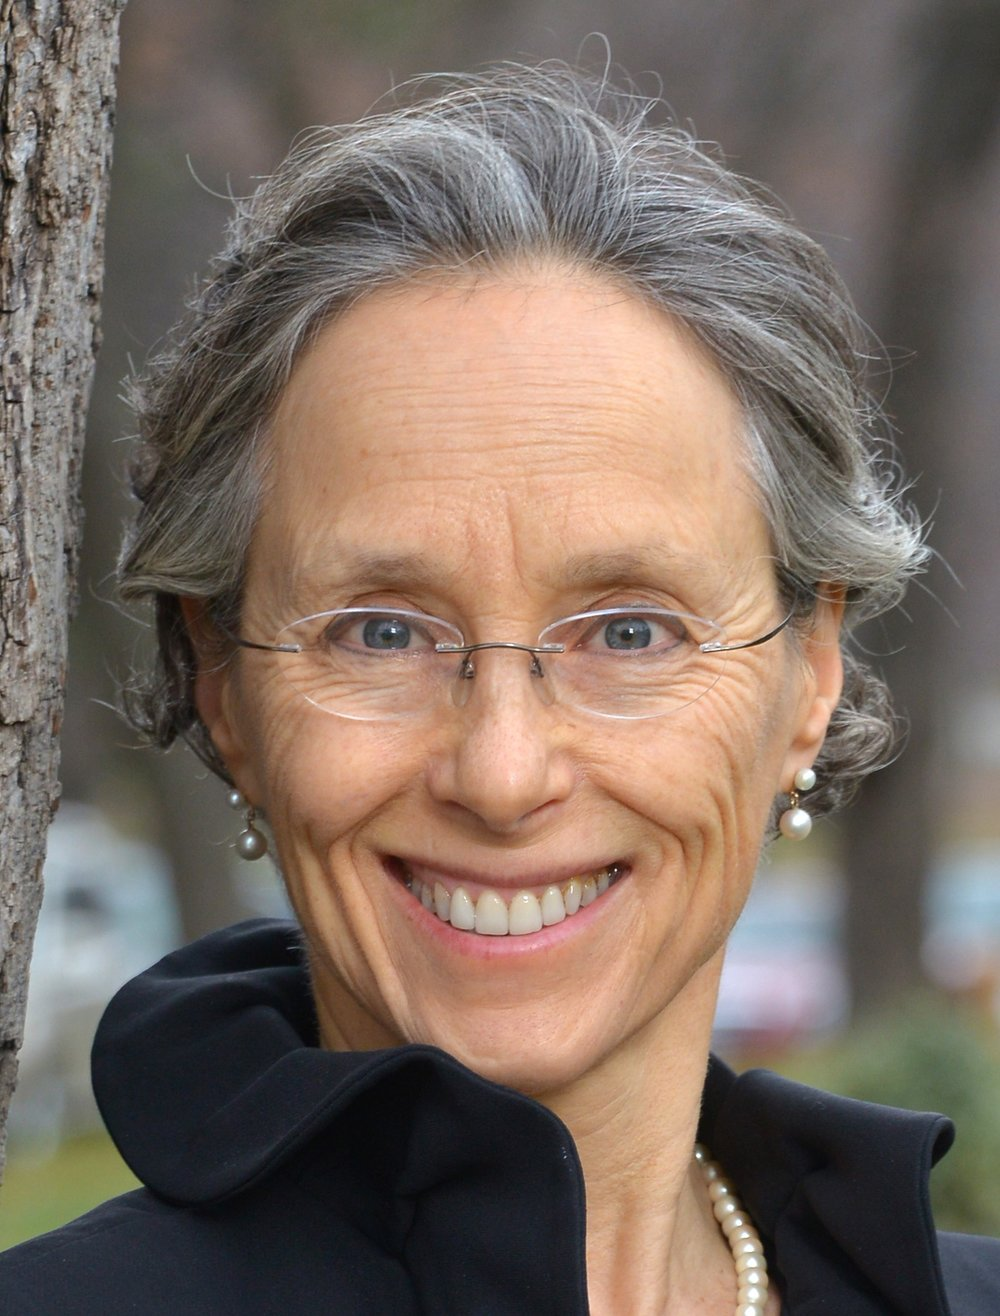 Dianne Saxe - Dr. Dianne Saxe is the Environmental Commissioner of Ontario, a tough but fair watchdog over government compliance with the Environmental Bill of Rights. Prior to her appointment in 2015, Commissioner Saxe was one of Canada's most respected environmental lawyers. A Certified Environmental Law Specialist, Commissioner Saxe was recognized in every Canadian and international legal rating service, including acknowledgement as one of the world's top 25 environmental lawyers by Best of the Best, 2008 and as Best Lawyers' first Environmental Lawyer of the Year for Toronto. Her five-year appointment as Environmental Commissioner will be focused on serving the Ontario Legislature, improving the effectiveness of the Environmental Bill of Rights and catalyzing better environmental, energy and climate outcomes, for and with the people of Ontario.